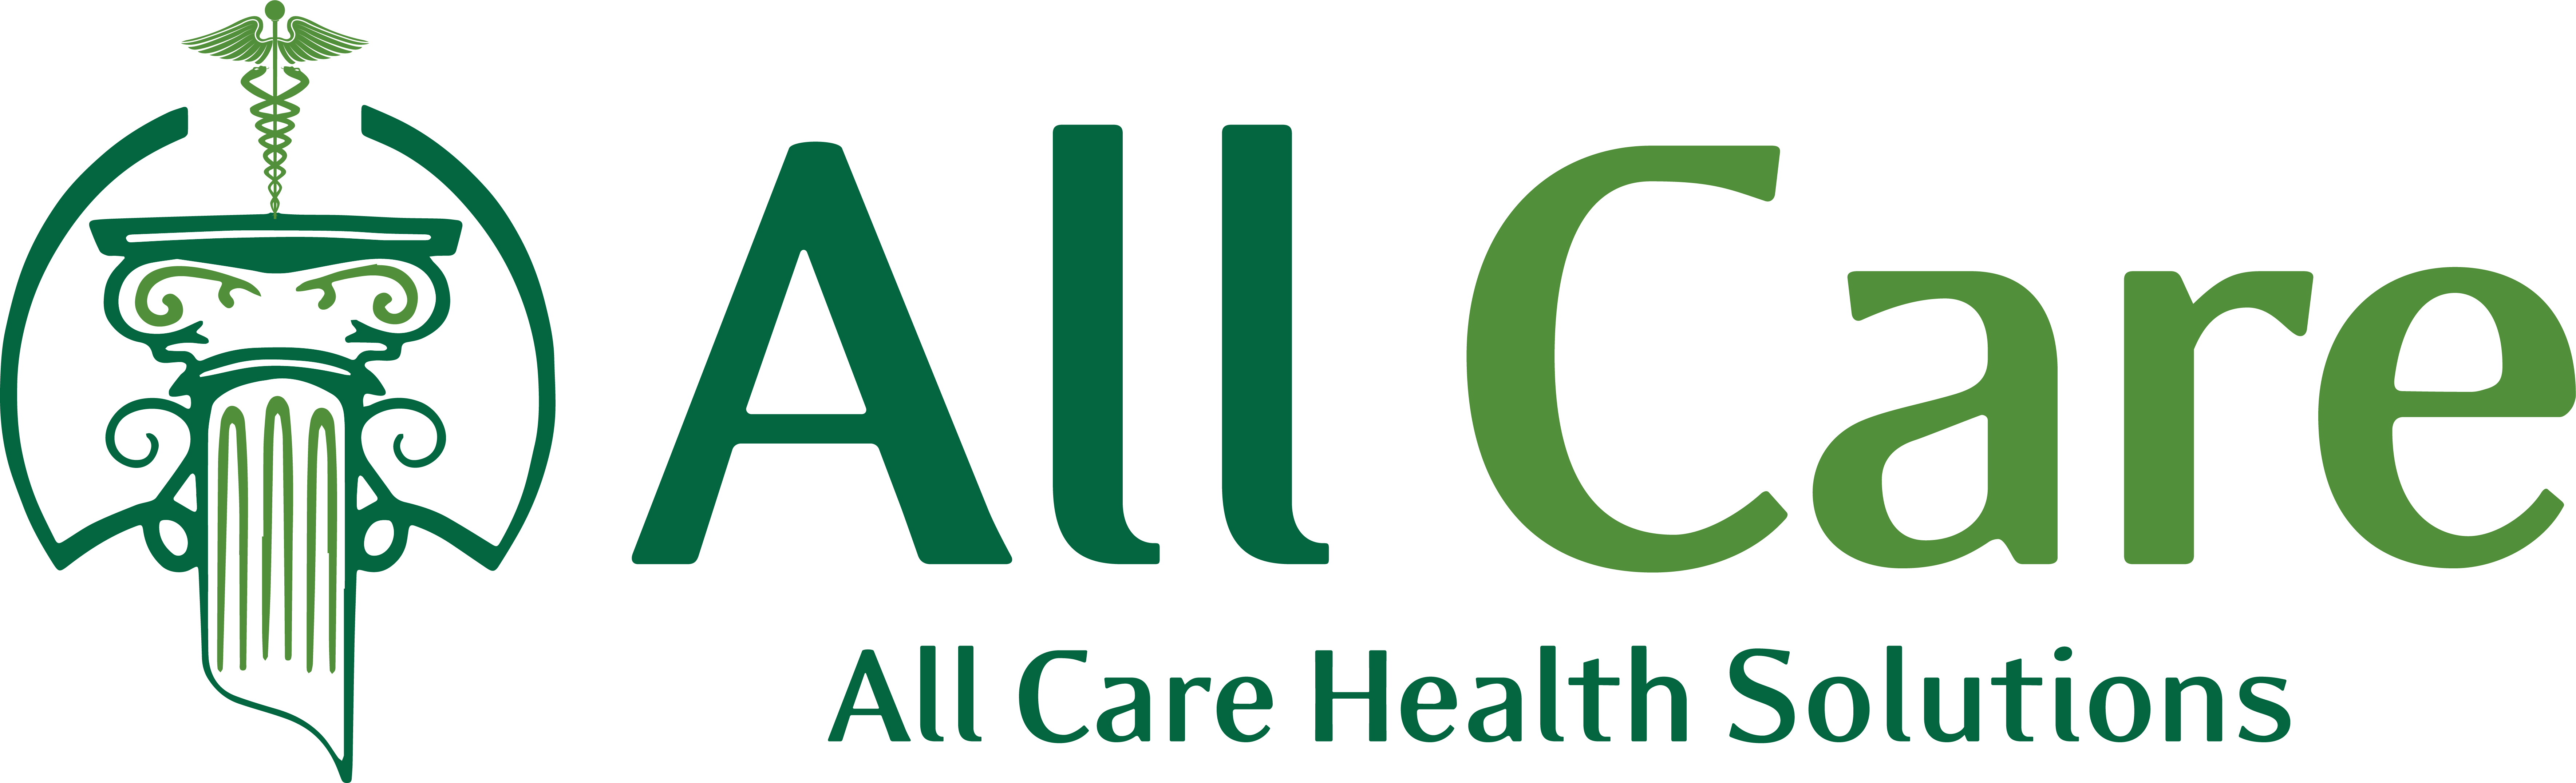 All Care Health Solutions